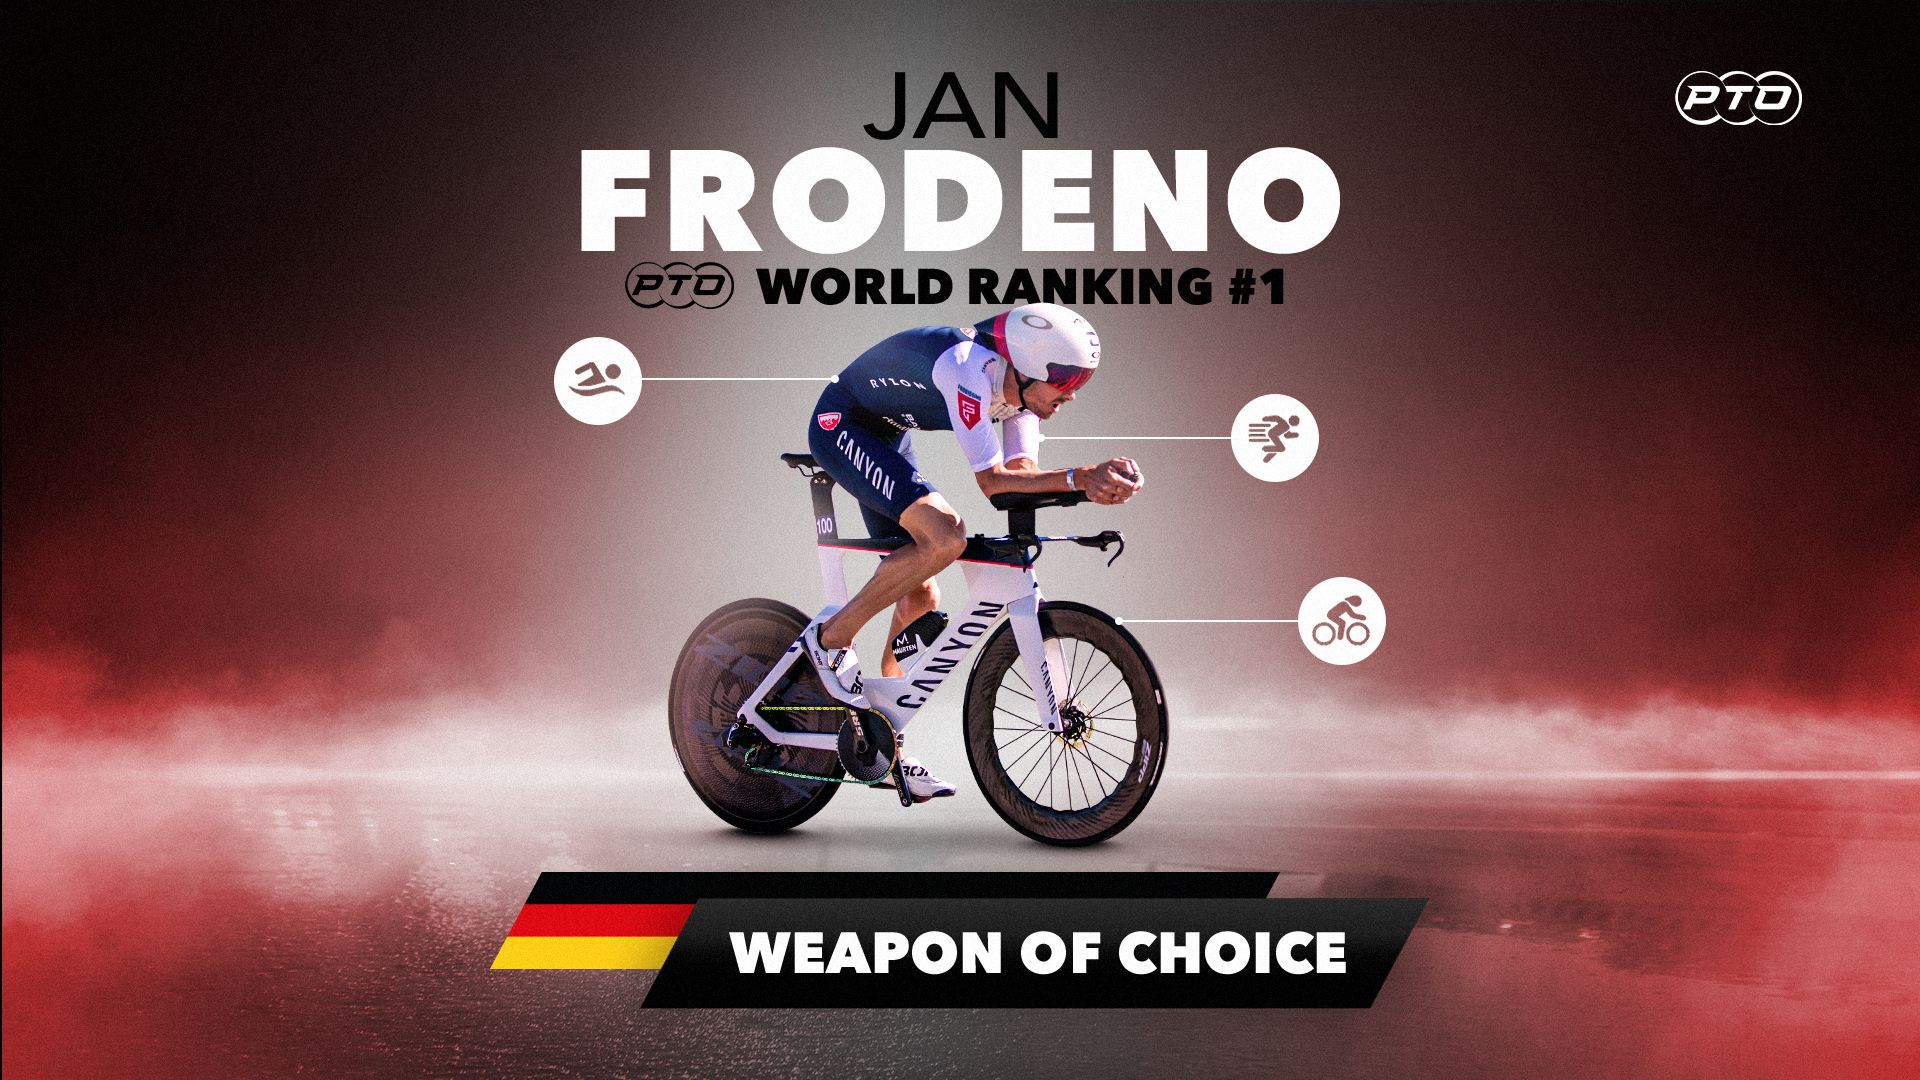 Weapon of Choice || Jan Frodeno